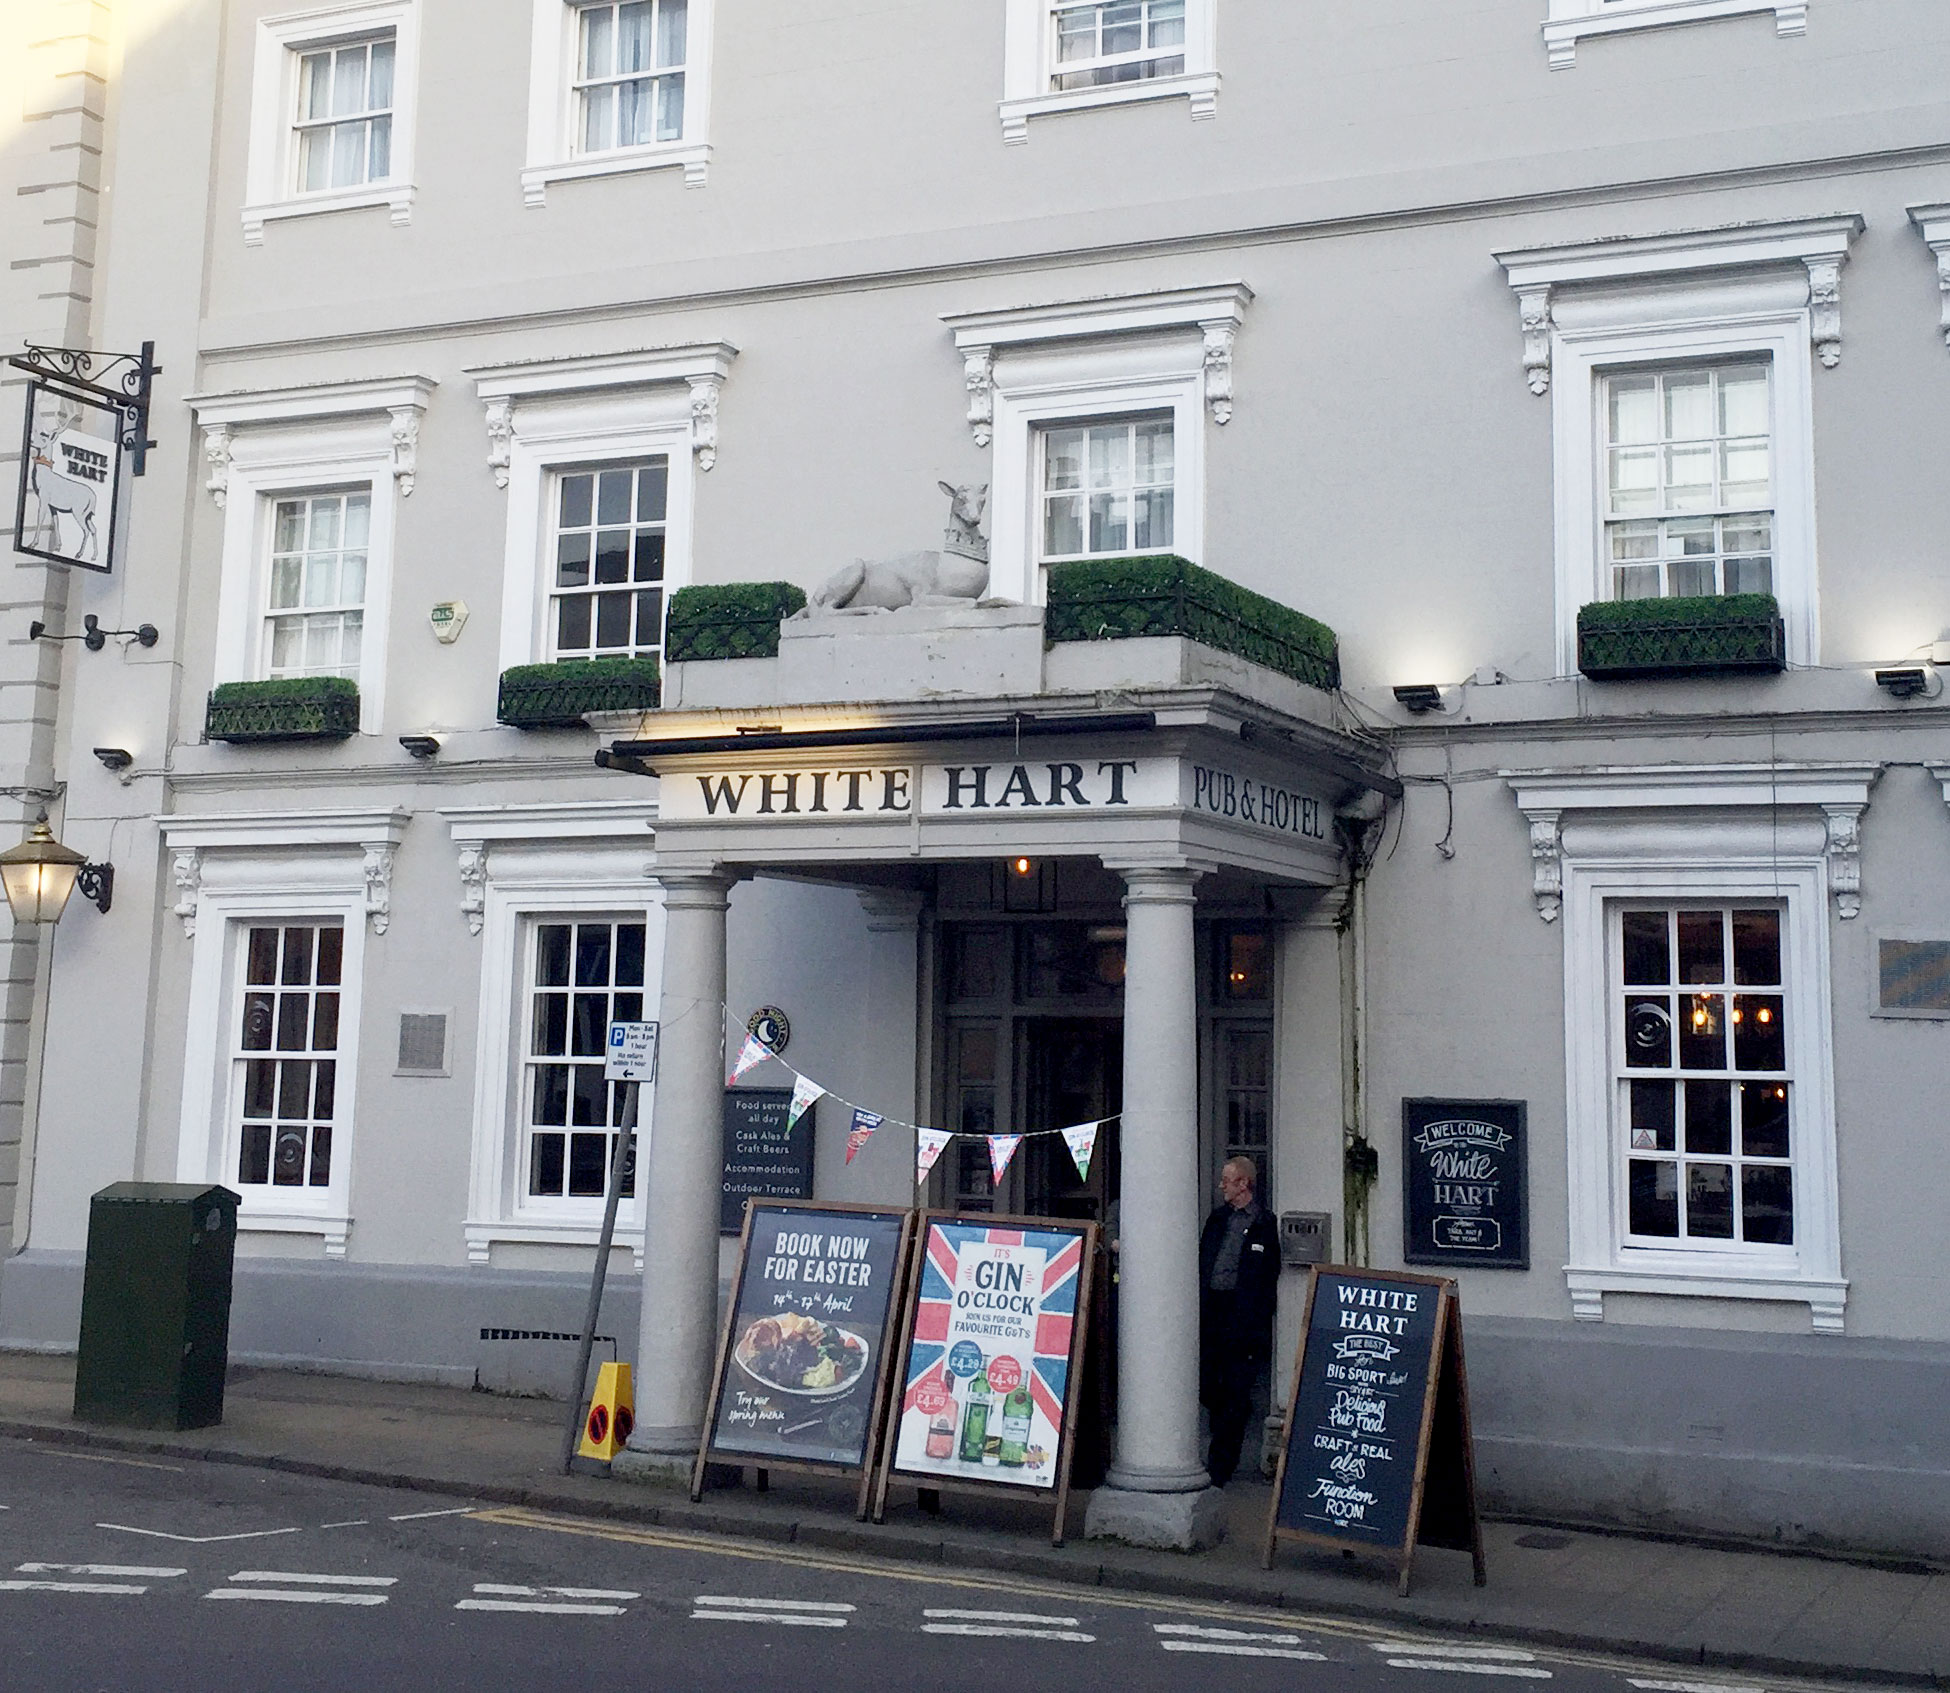 The White Hart Pub in Buckingham